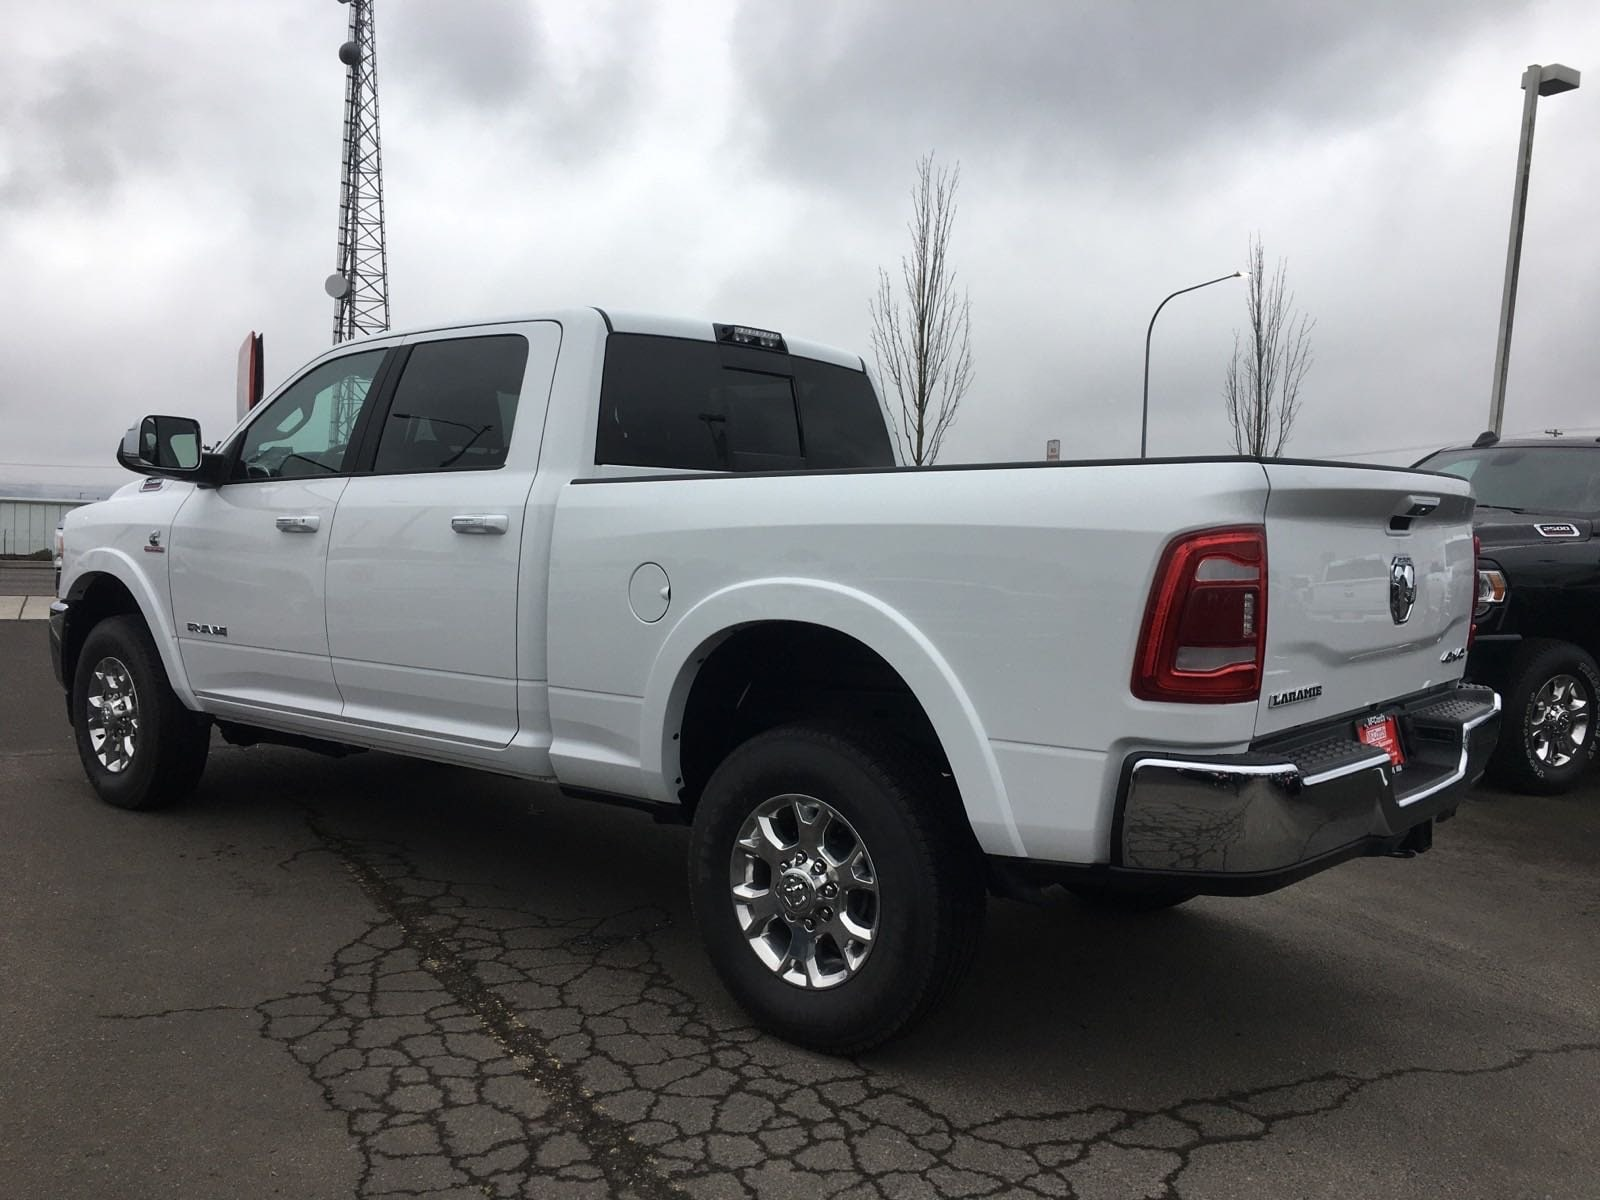 2019 Ram 2500 Crew Cab 4x4, Pickup #R1984 - photo 1